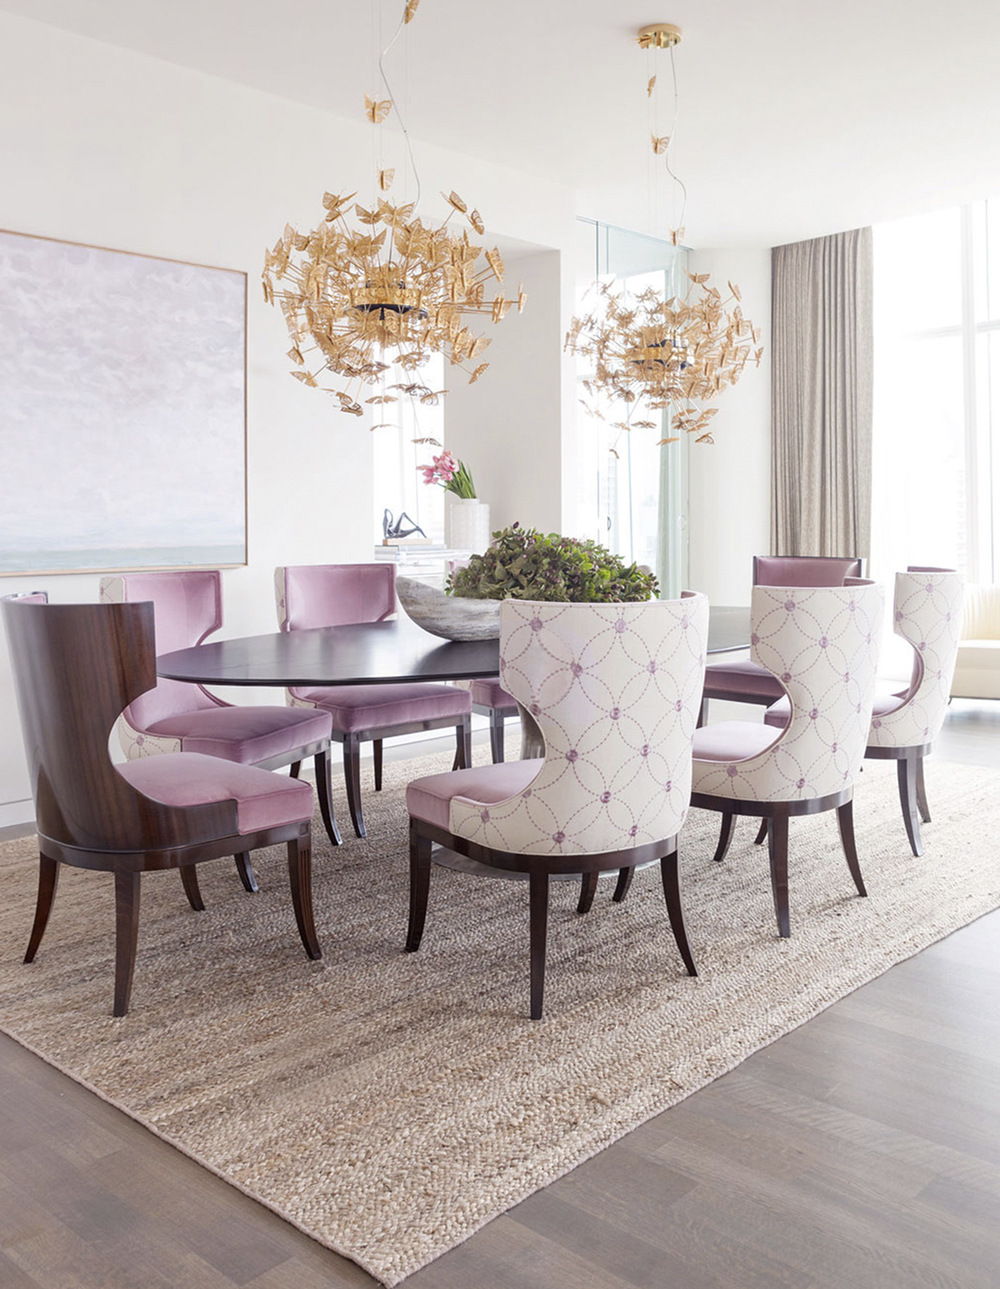 10 Ideas on How to Make Your Dining Room Designs Look Amazing6 dining room designs 10 Ideas on How to Make Your Dining Room Designs Look Amazing 10 Ideas on How to Make Your Dining Room Designs Look Amazing6